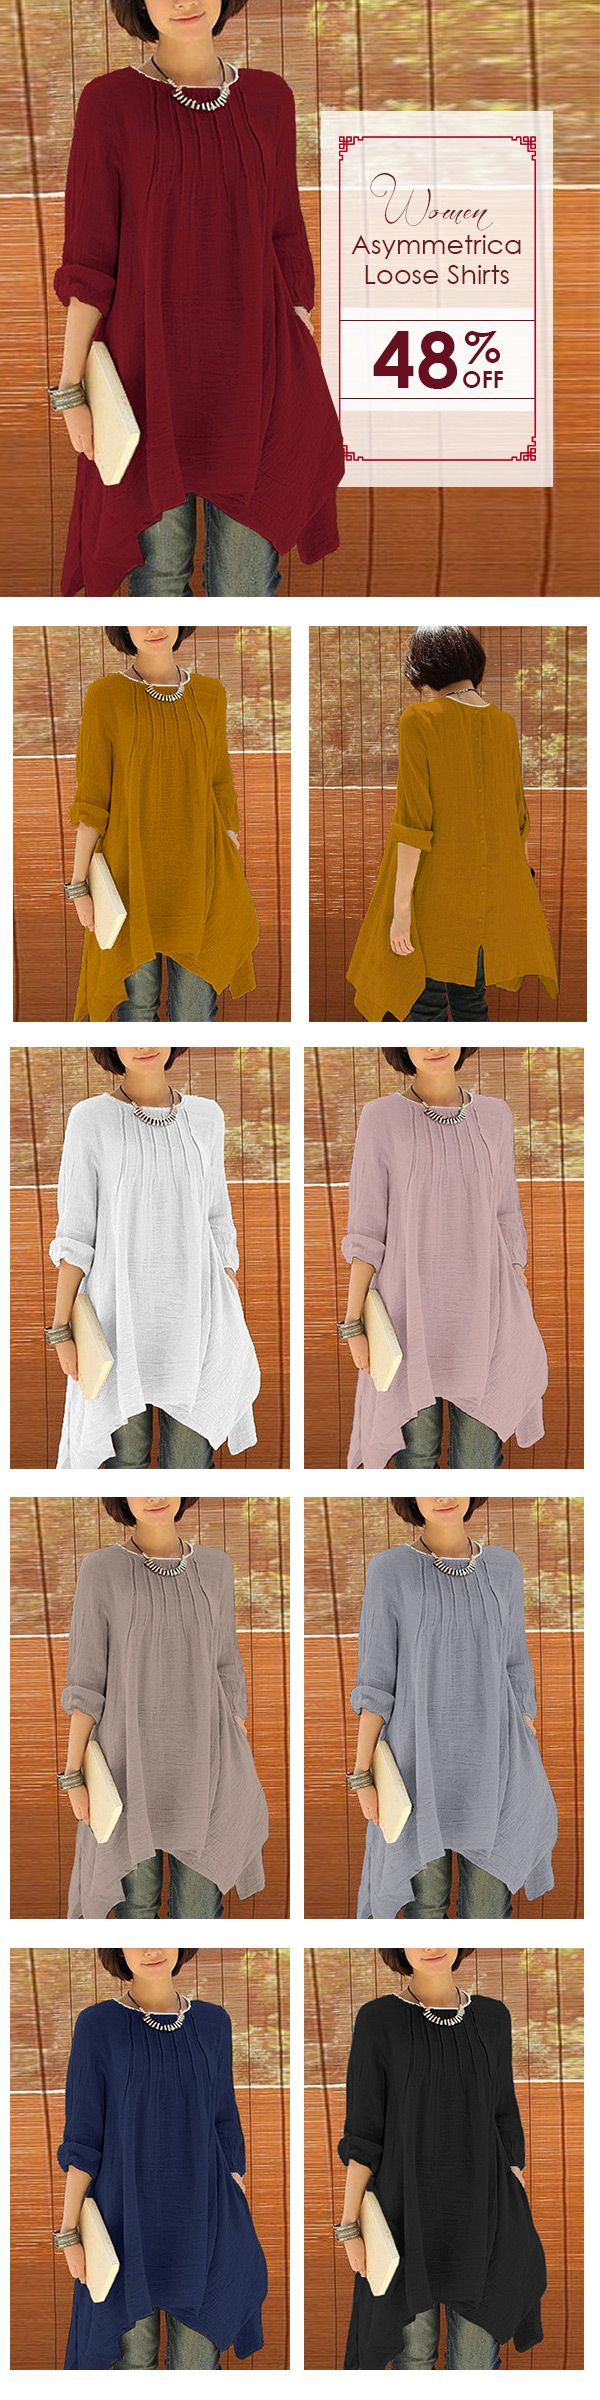 [Newchic Online Shopping] 48%OFF Women Long Sleeve Pure Color Asymmetrical Loose Shirts